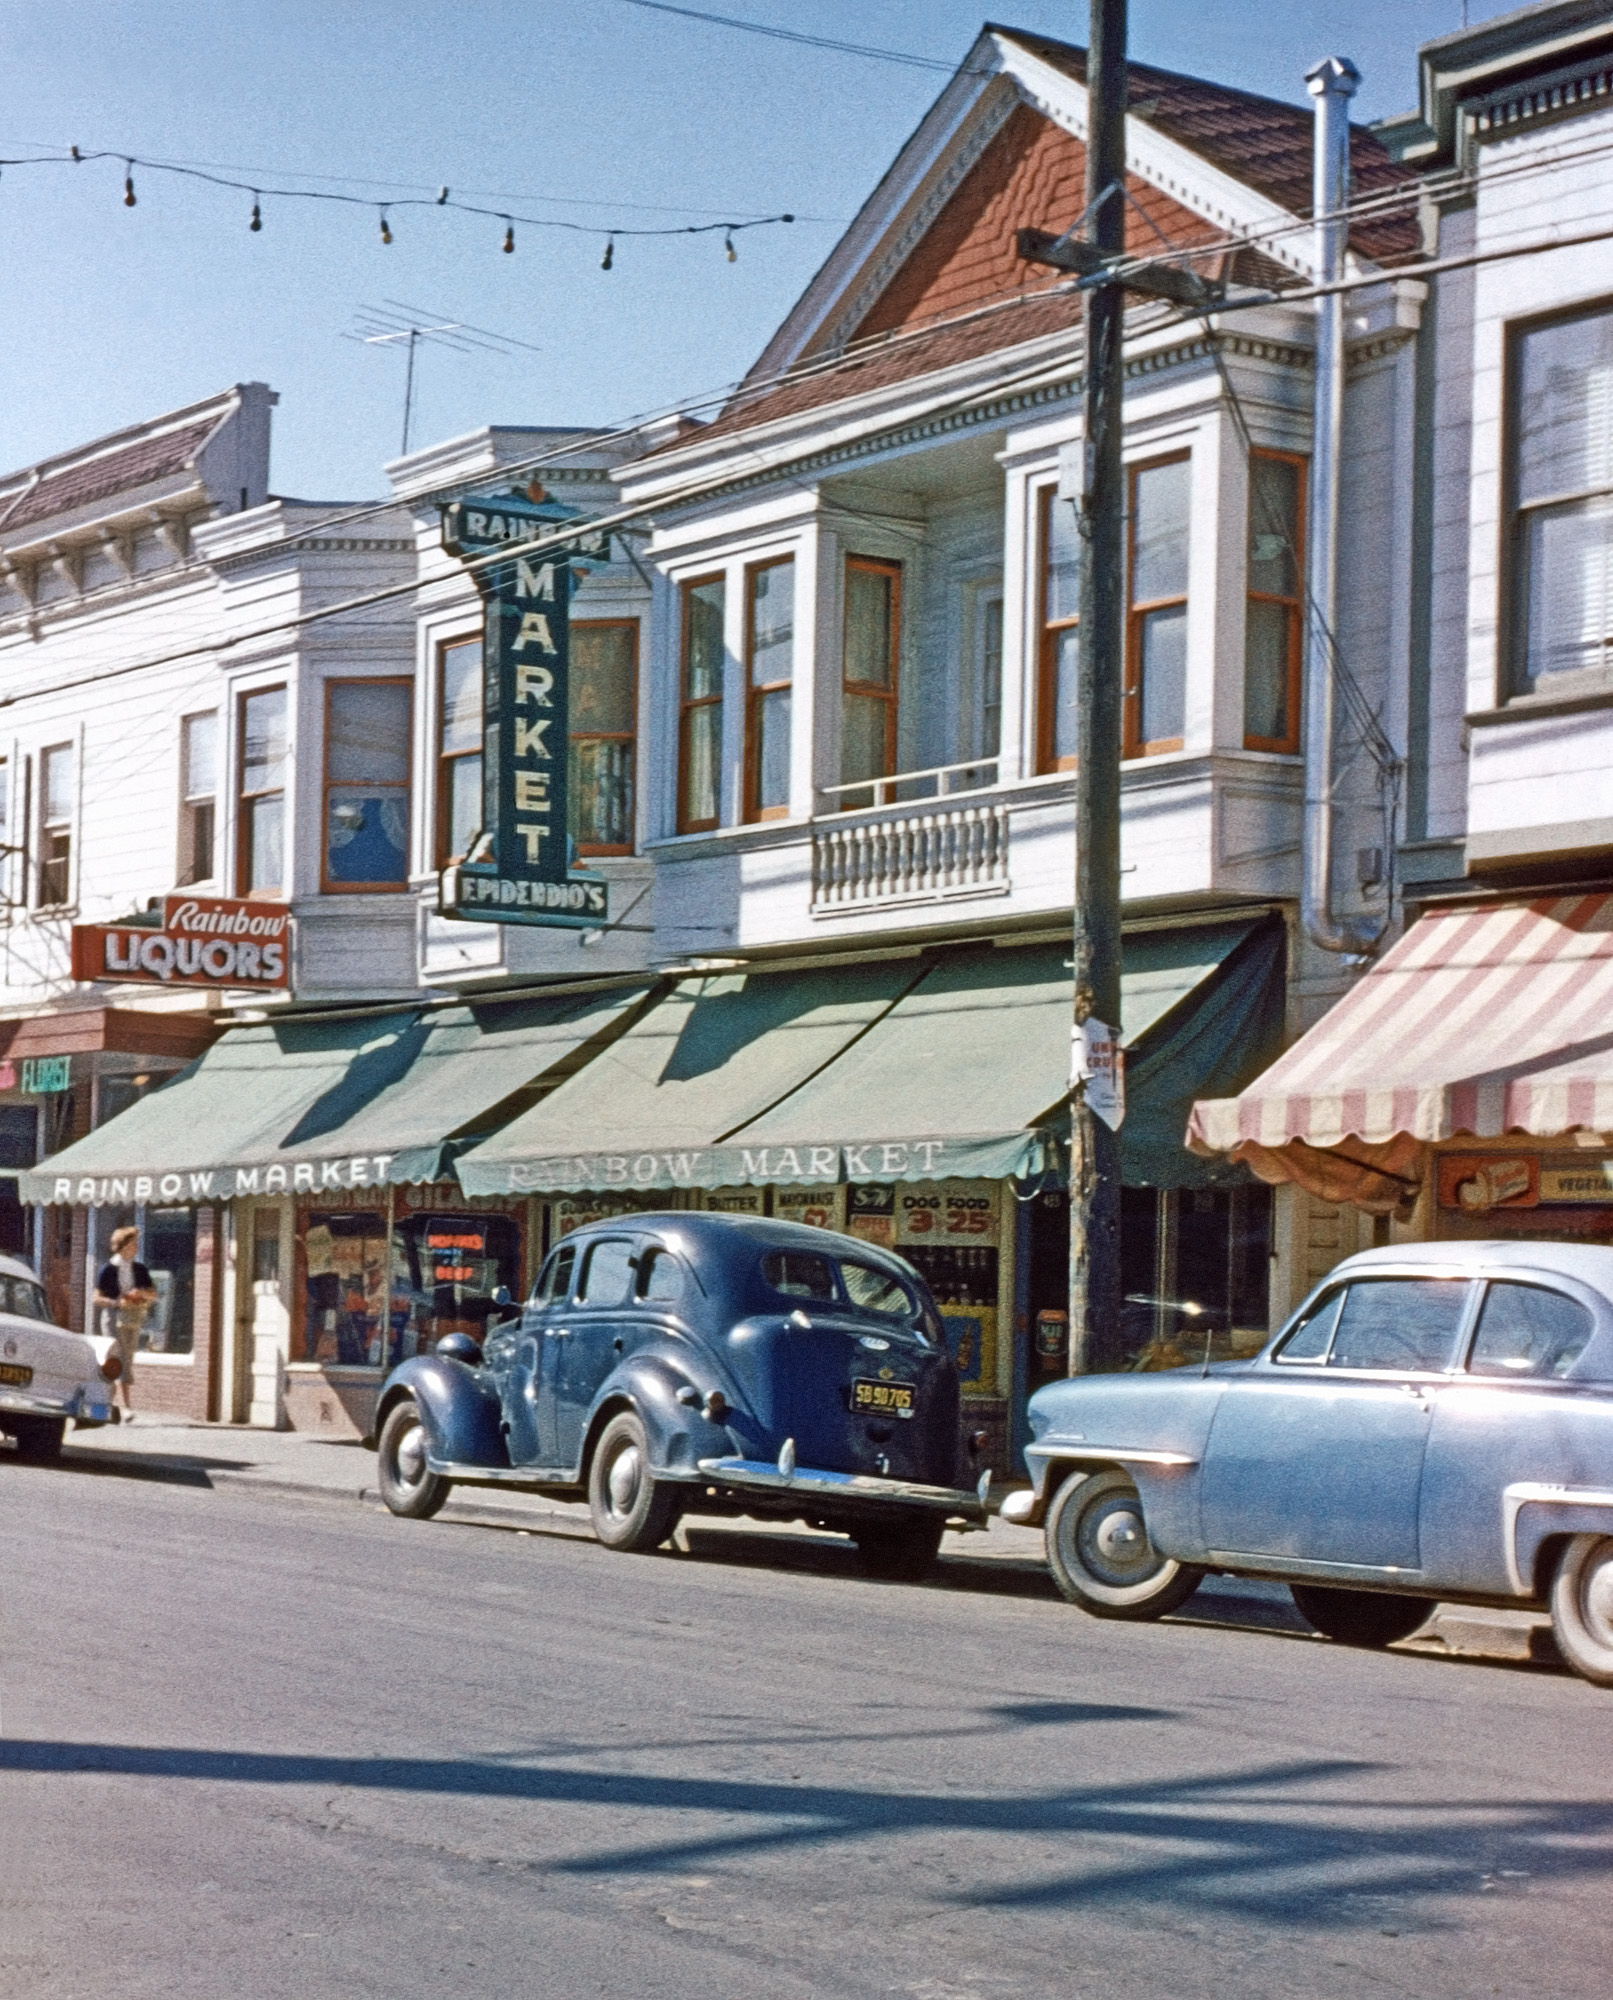 6540 Best Images About 1 Kodachrome Vintage Color On: 1000+ Images About History In Color On Pinterest